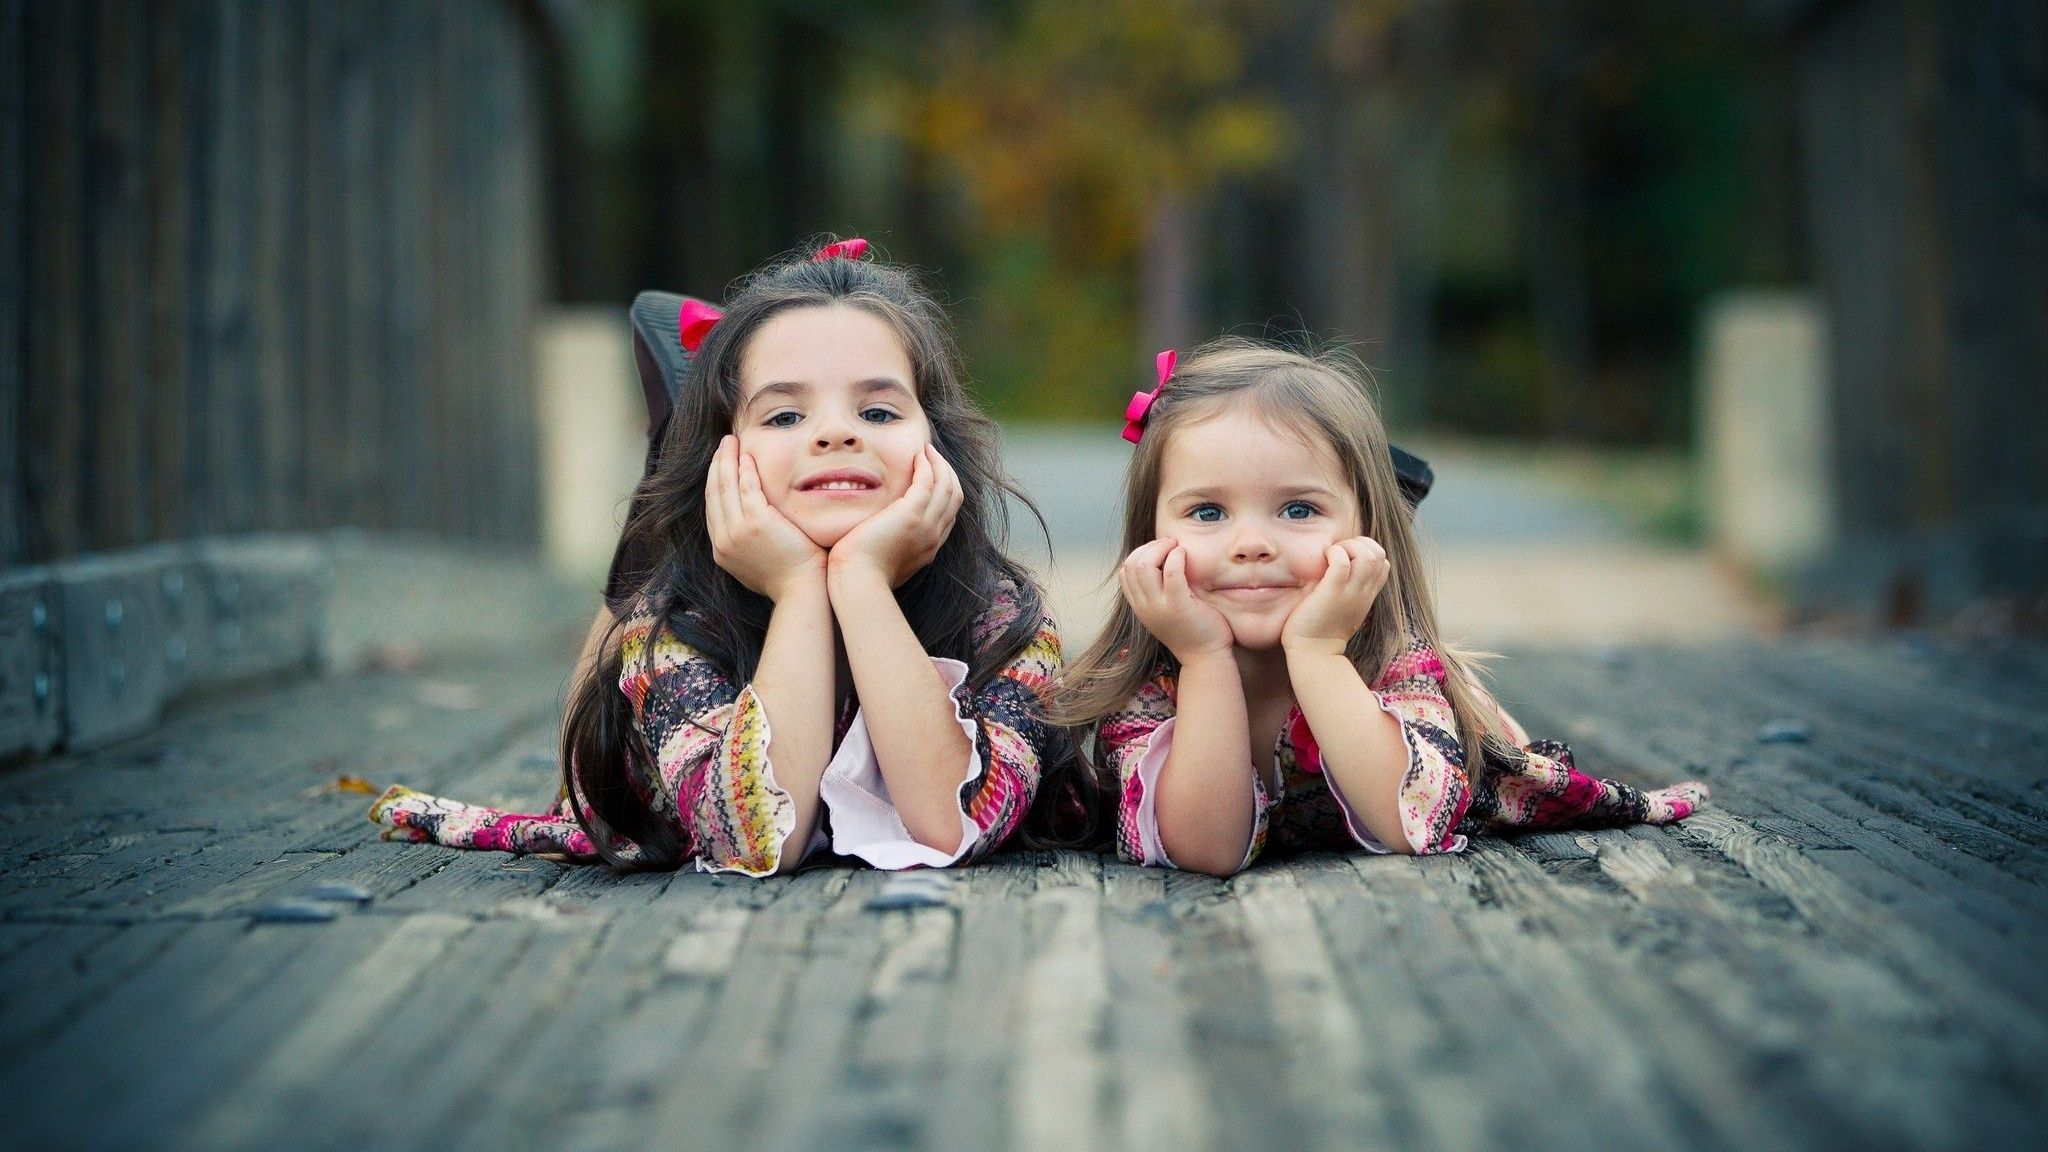 Sisterly Love Cute Sister Friendship Photography Sisters